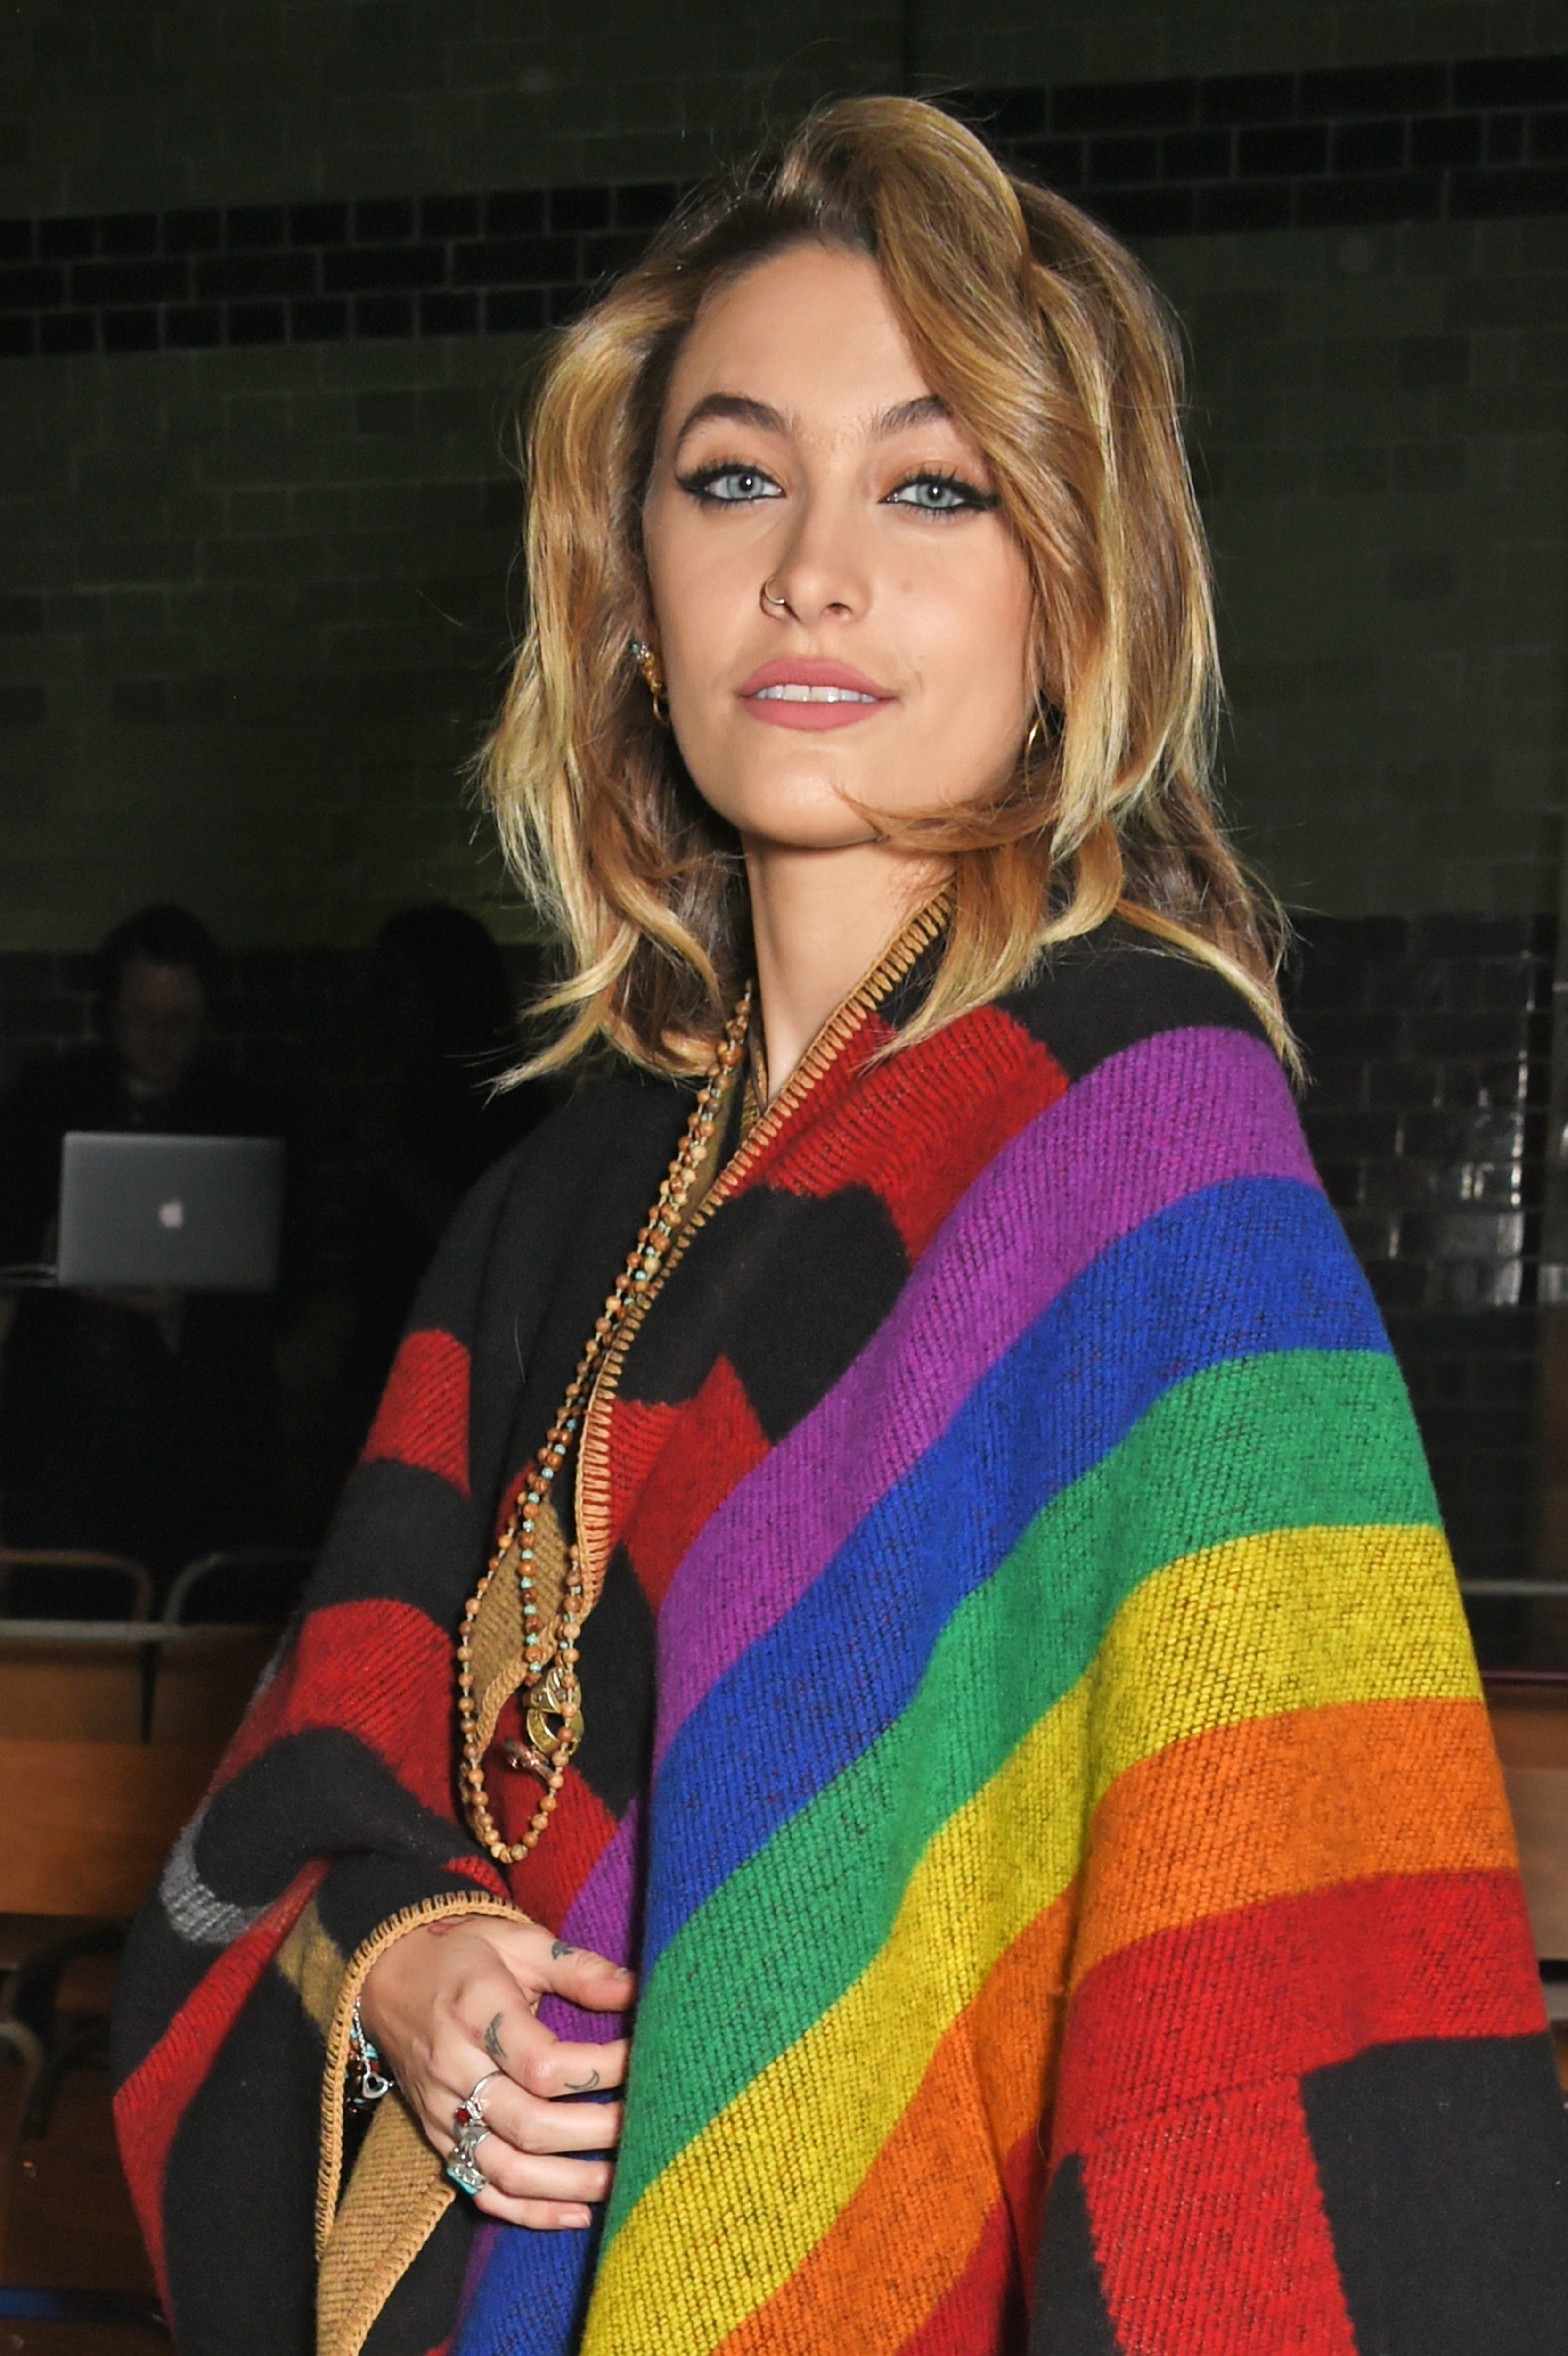 Paris Jackson at the Burberry February 2018 show during London Fashion Week at Dimco Buildings in London, England.   Photo: Getty Images